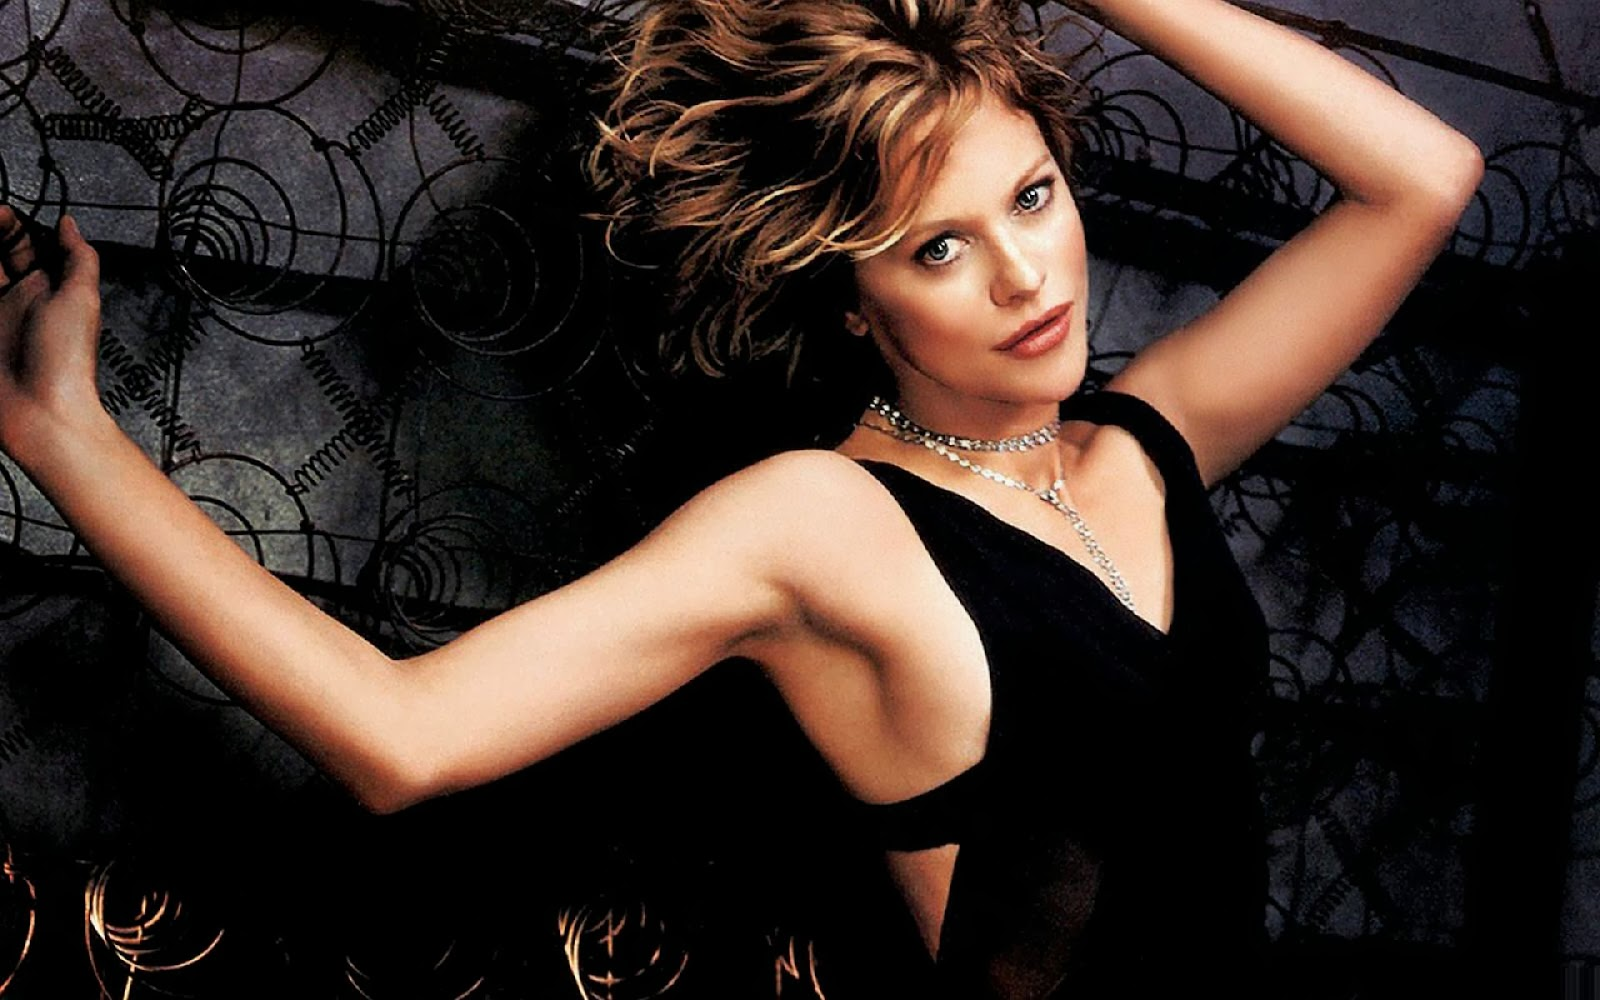 Meg Ryan in Black Bra